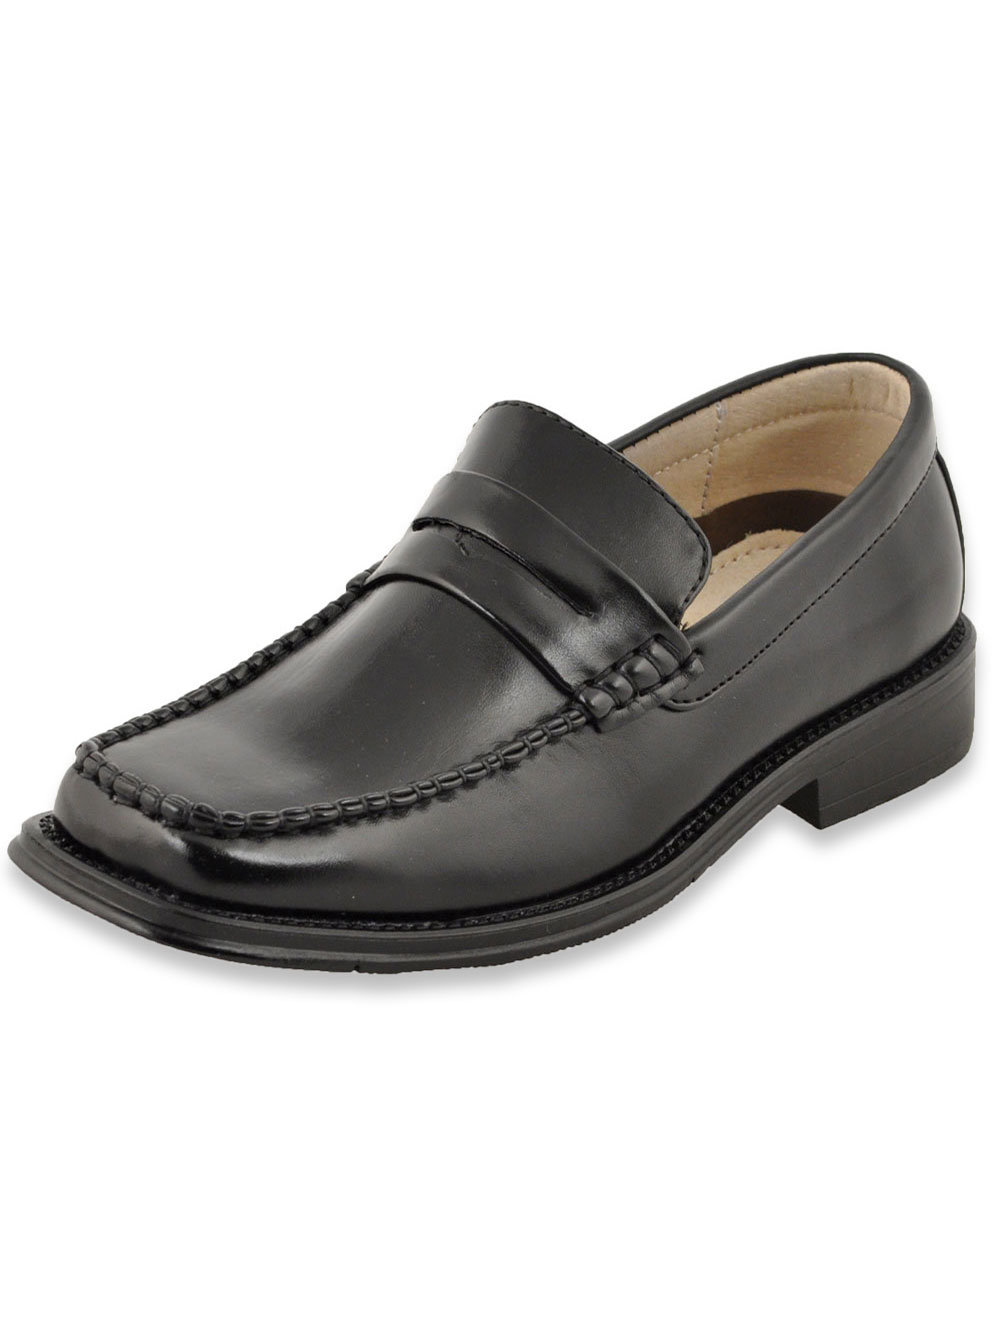 Florsheim - Toddler's & Kid's Croquet Penny Jr. Leather Penny Loafers litastmaterlo.gq, offering the modern energy, style and personalized service of Saks Fifth Avenue stores, in an enhanced, easy-to-navigate shopping experience.